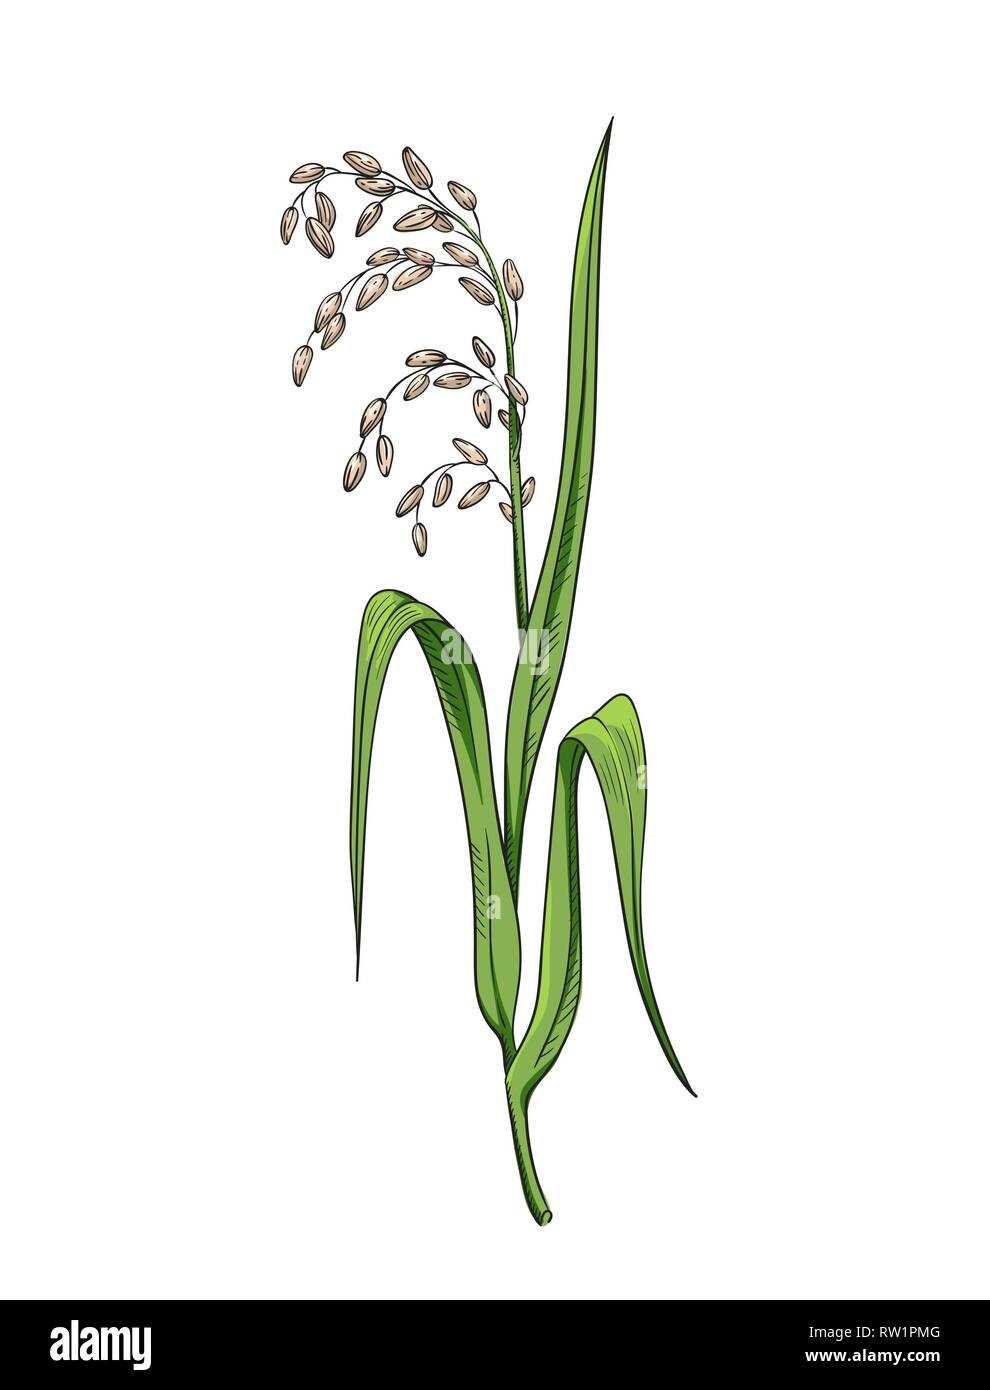 medium resolution of rice plant botanical illustration color vector drawing of rice twig with leaves and earof ripe grains